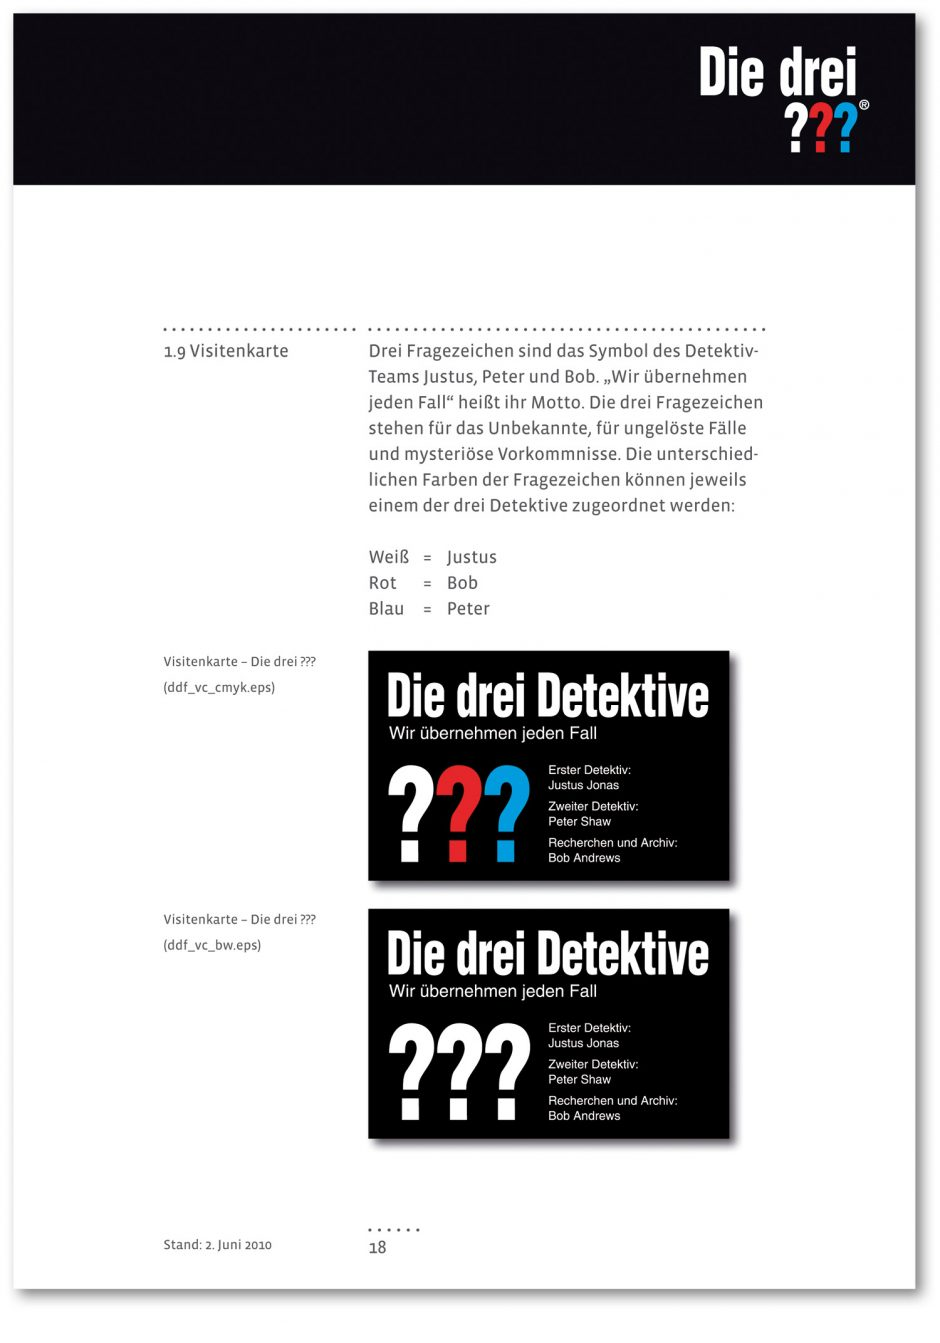 Die Drei Style Guide Page Online